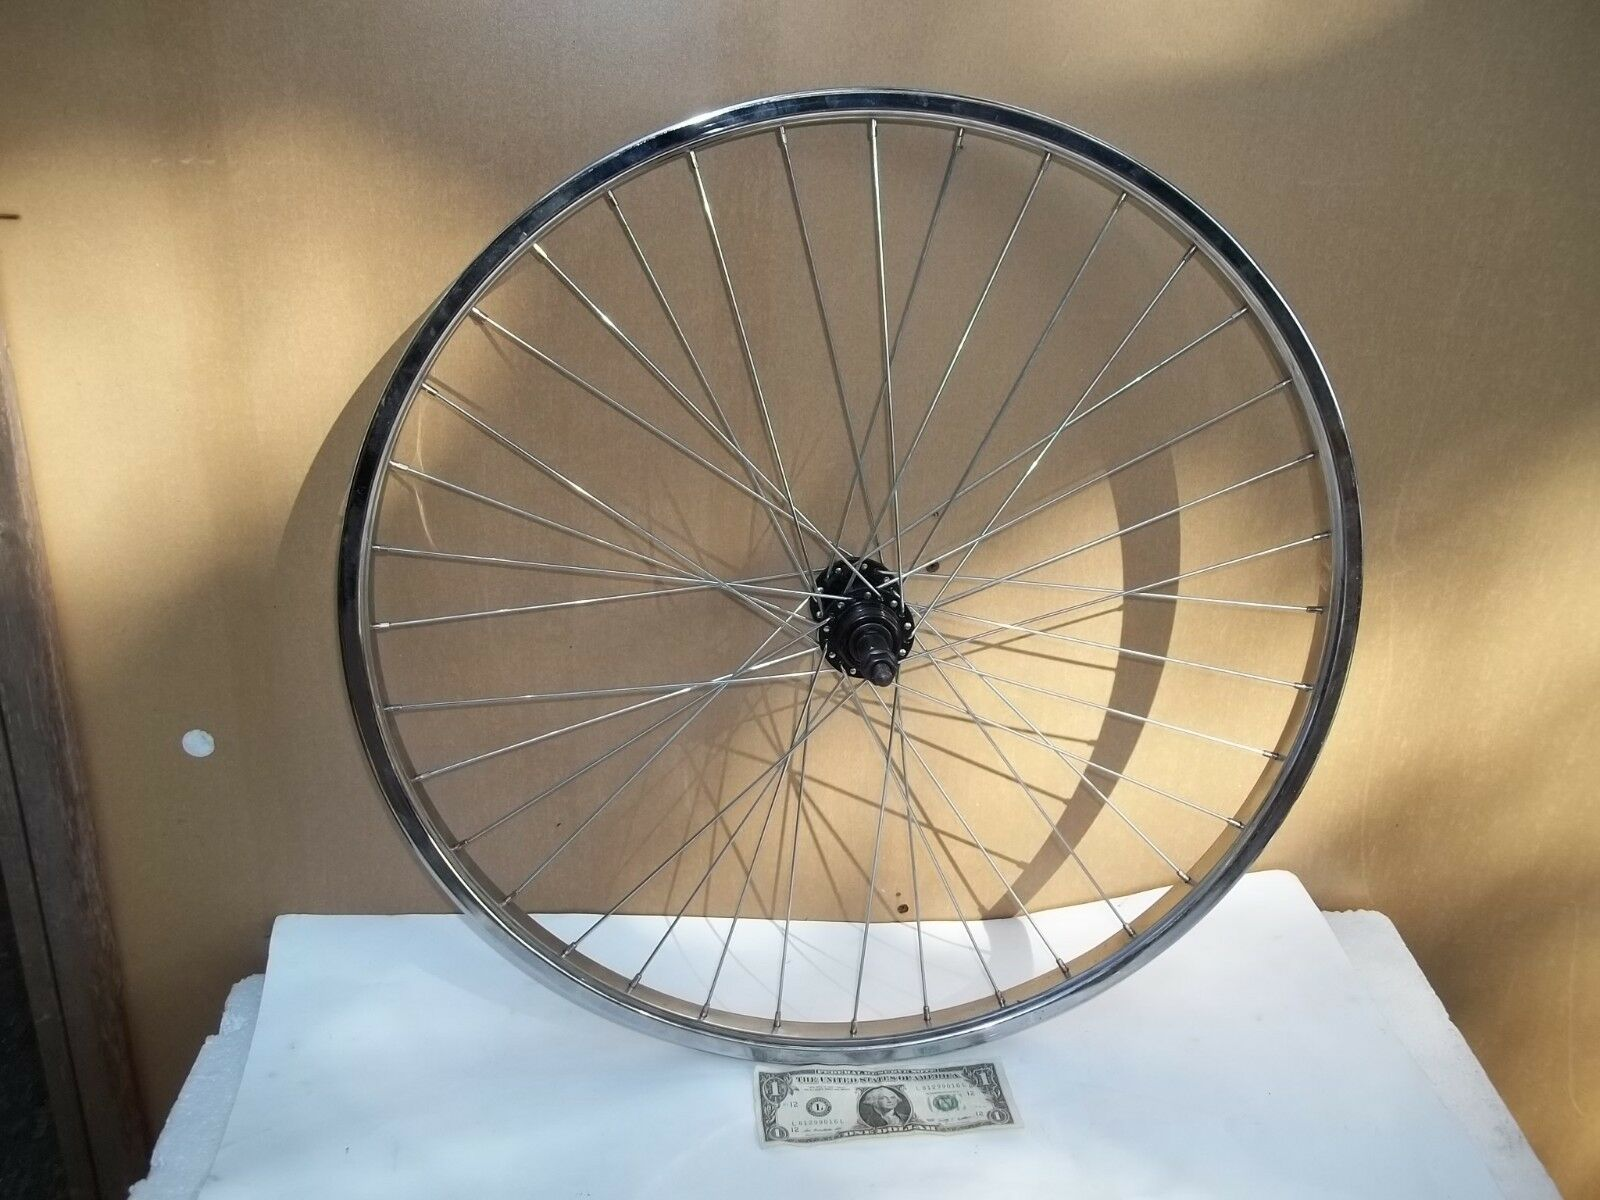 Unbranded 35 Metal Spoke Bicycle Bike Wheel - Good Condition